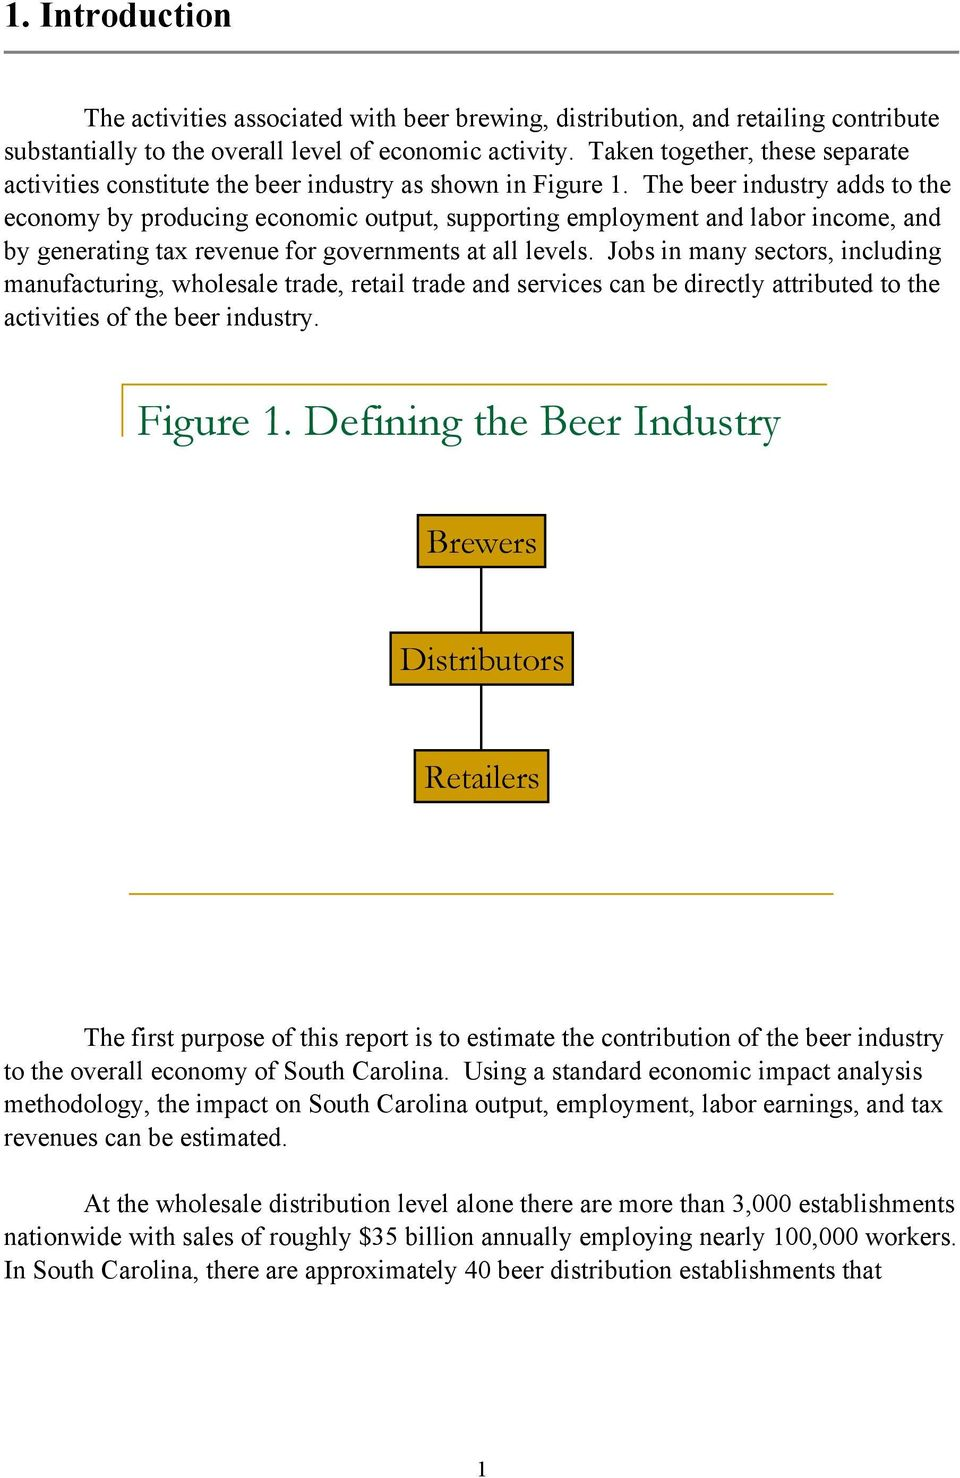 The beer industry adds to the economy by producing economic output, supporting employment and labor income, and by generating tax revenue for governments at all levels.